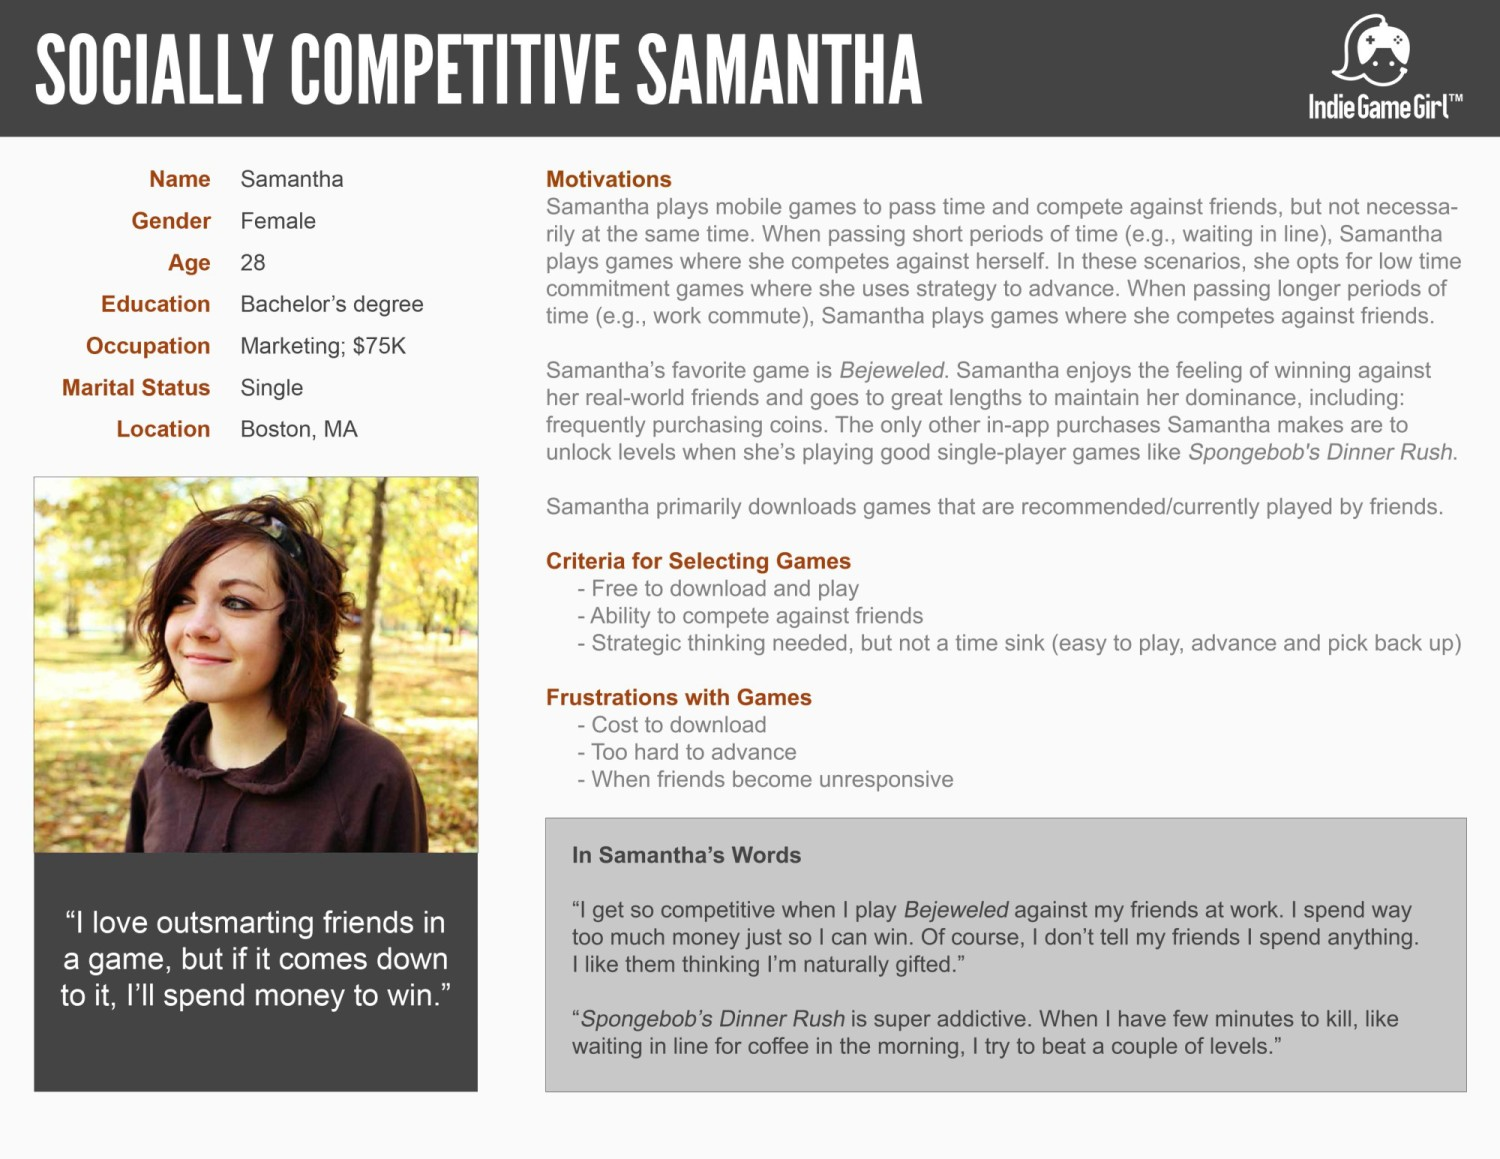 Socially Competitive Samantha customer persona